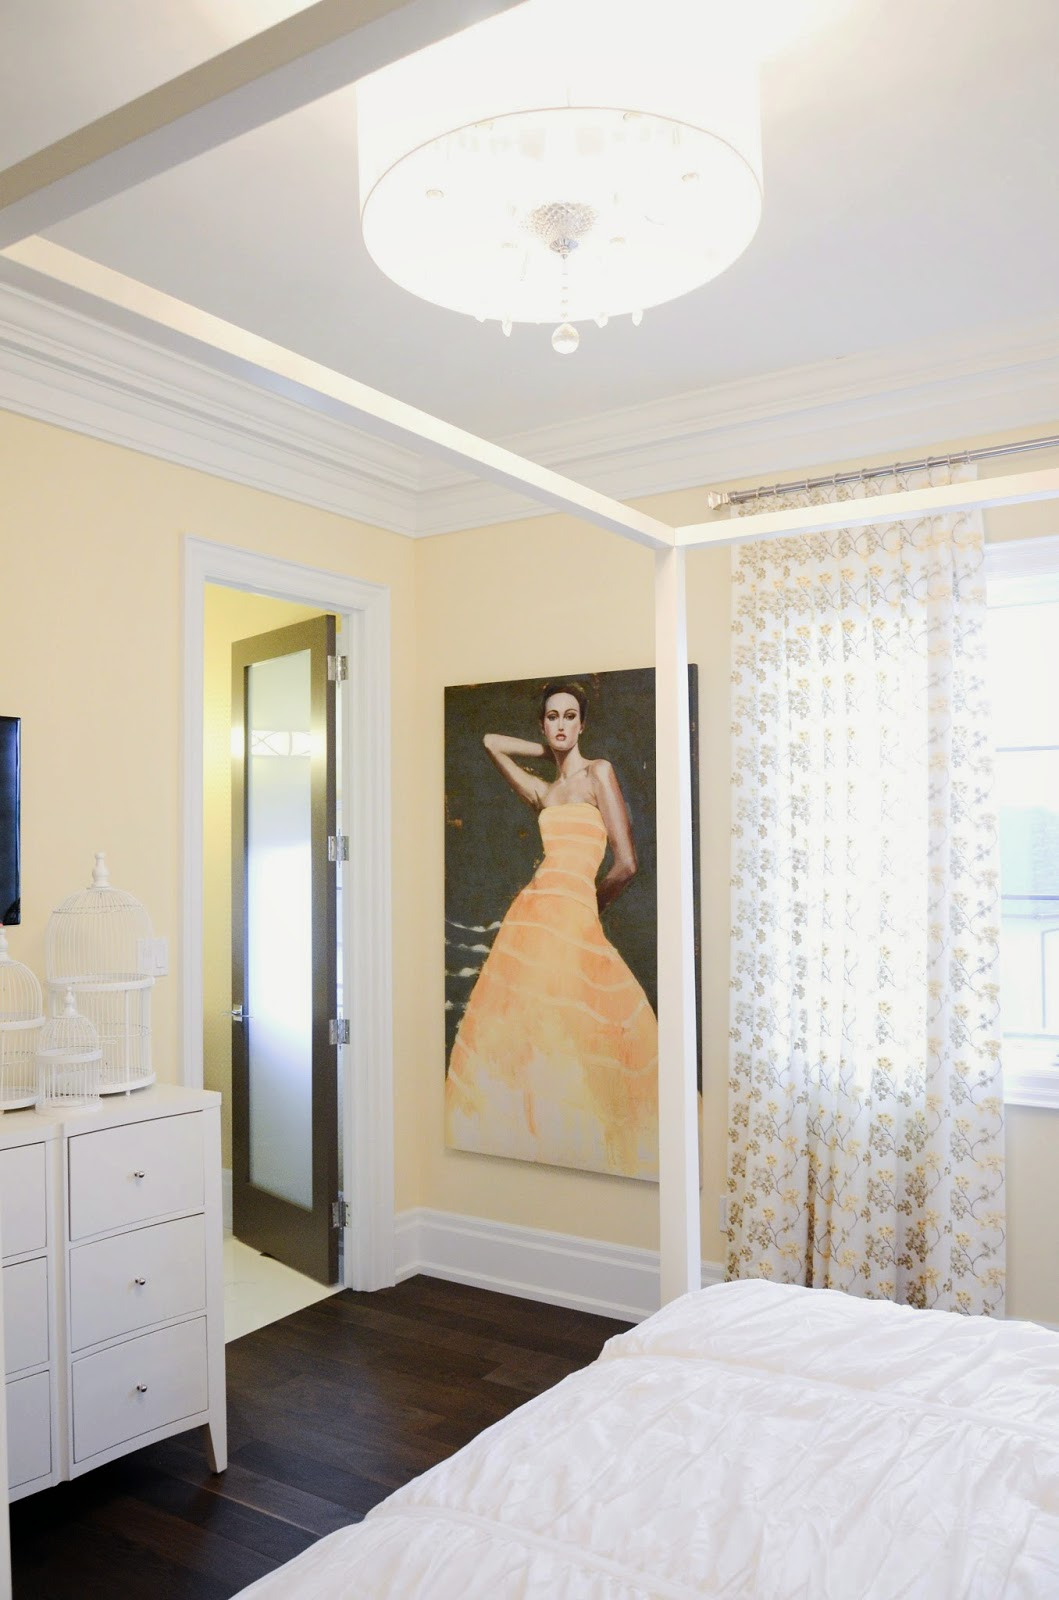 PMLOTTO KLEINBURG SHOWROOM: Bright Yellow bedroom decor ideas